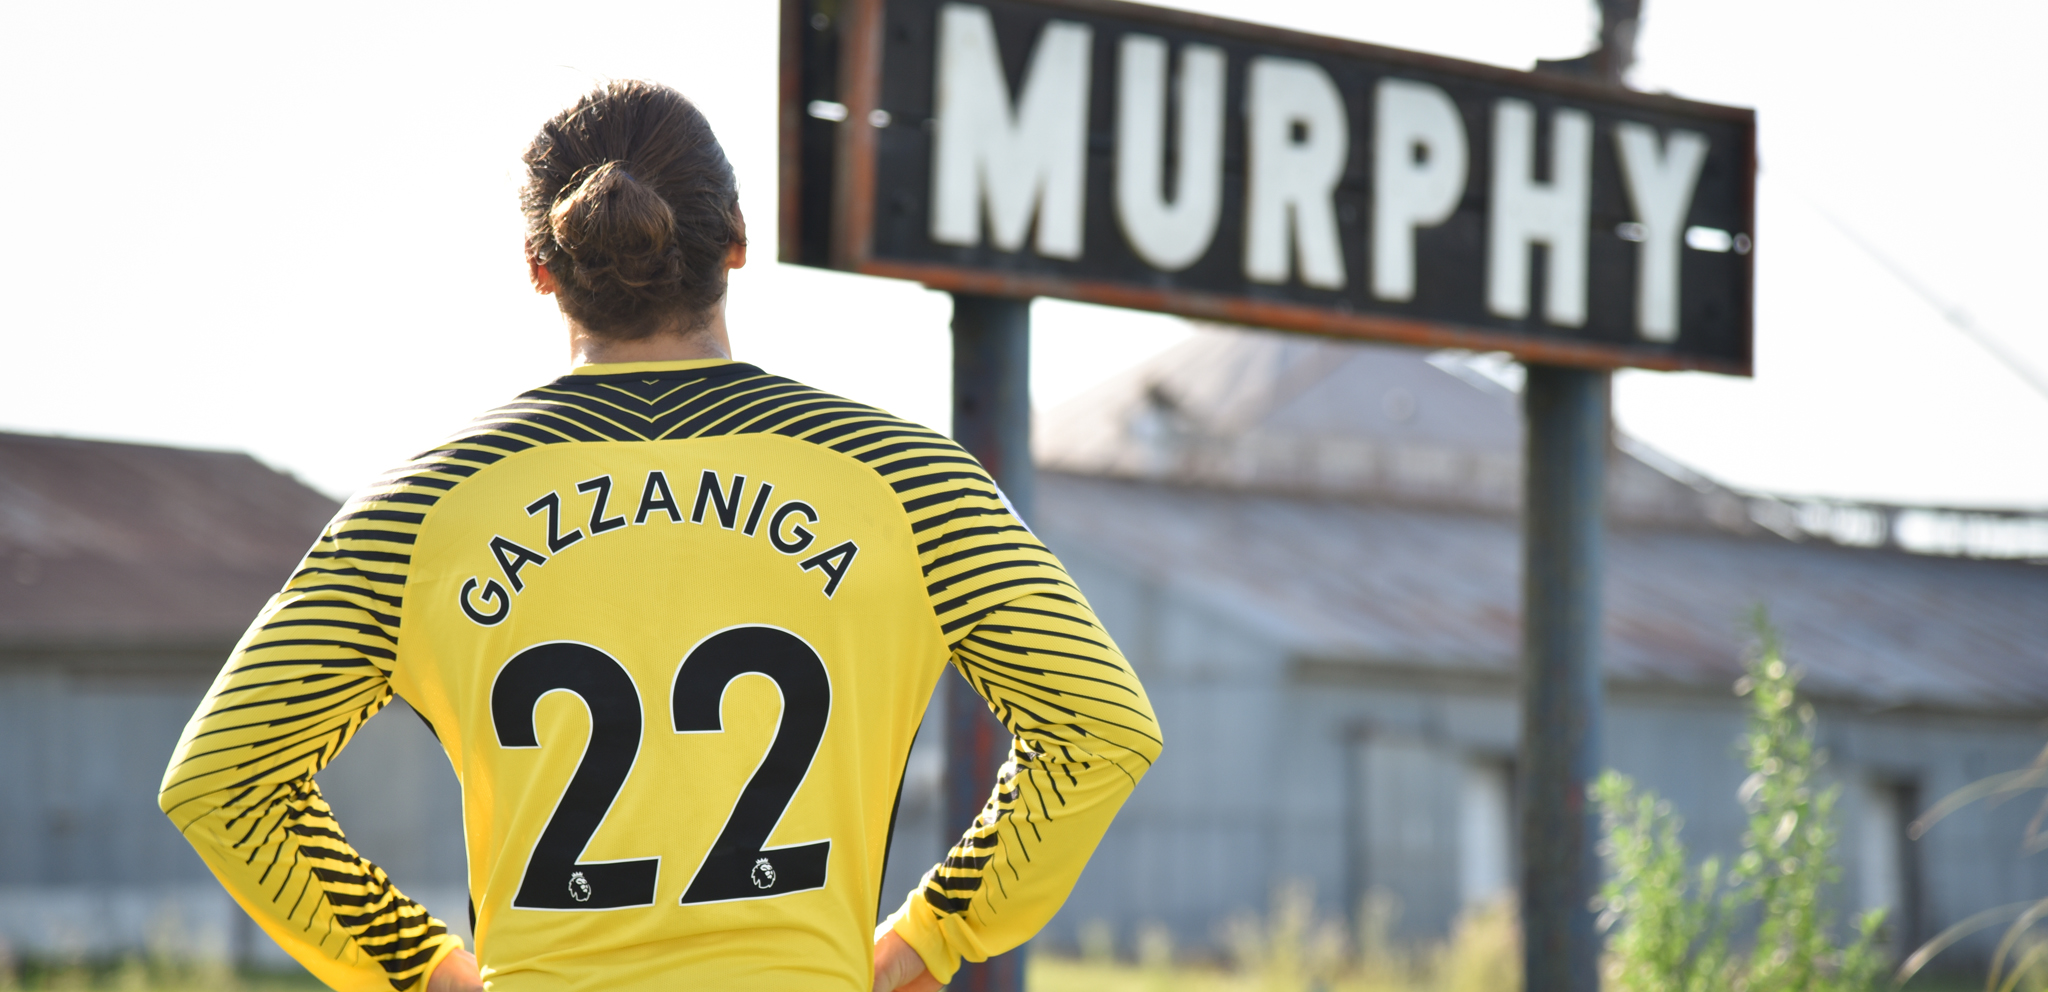 buy popular d35c3 37f71 Murphy: The Argentine town united by Pochettino, Gazzaniga ...